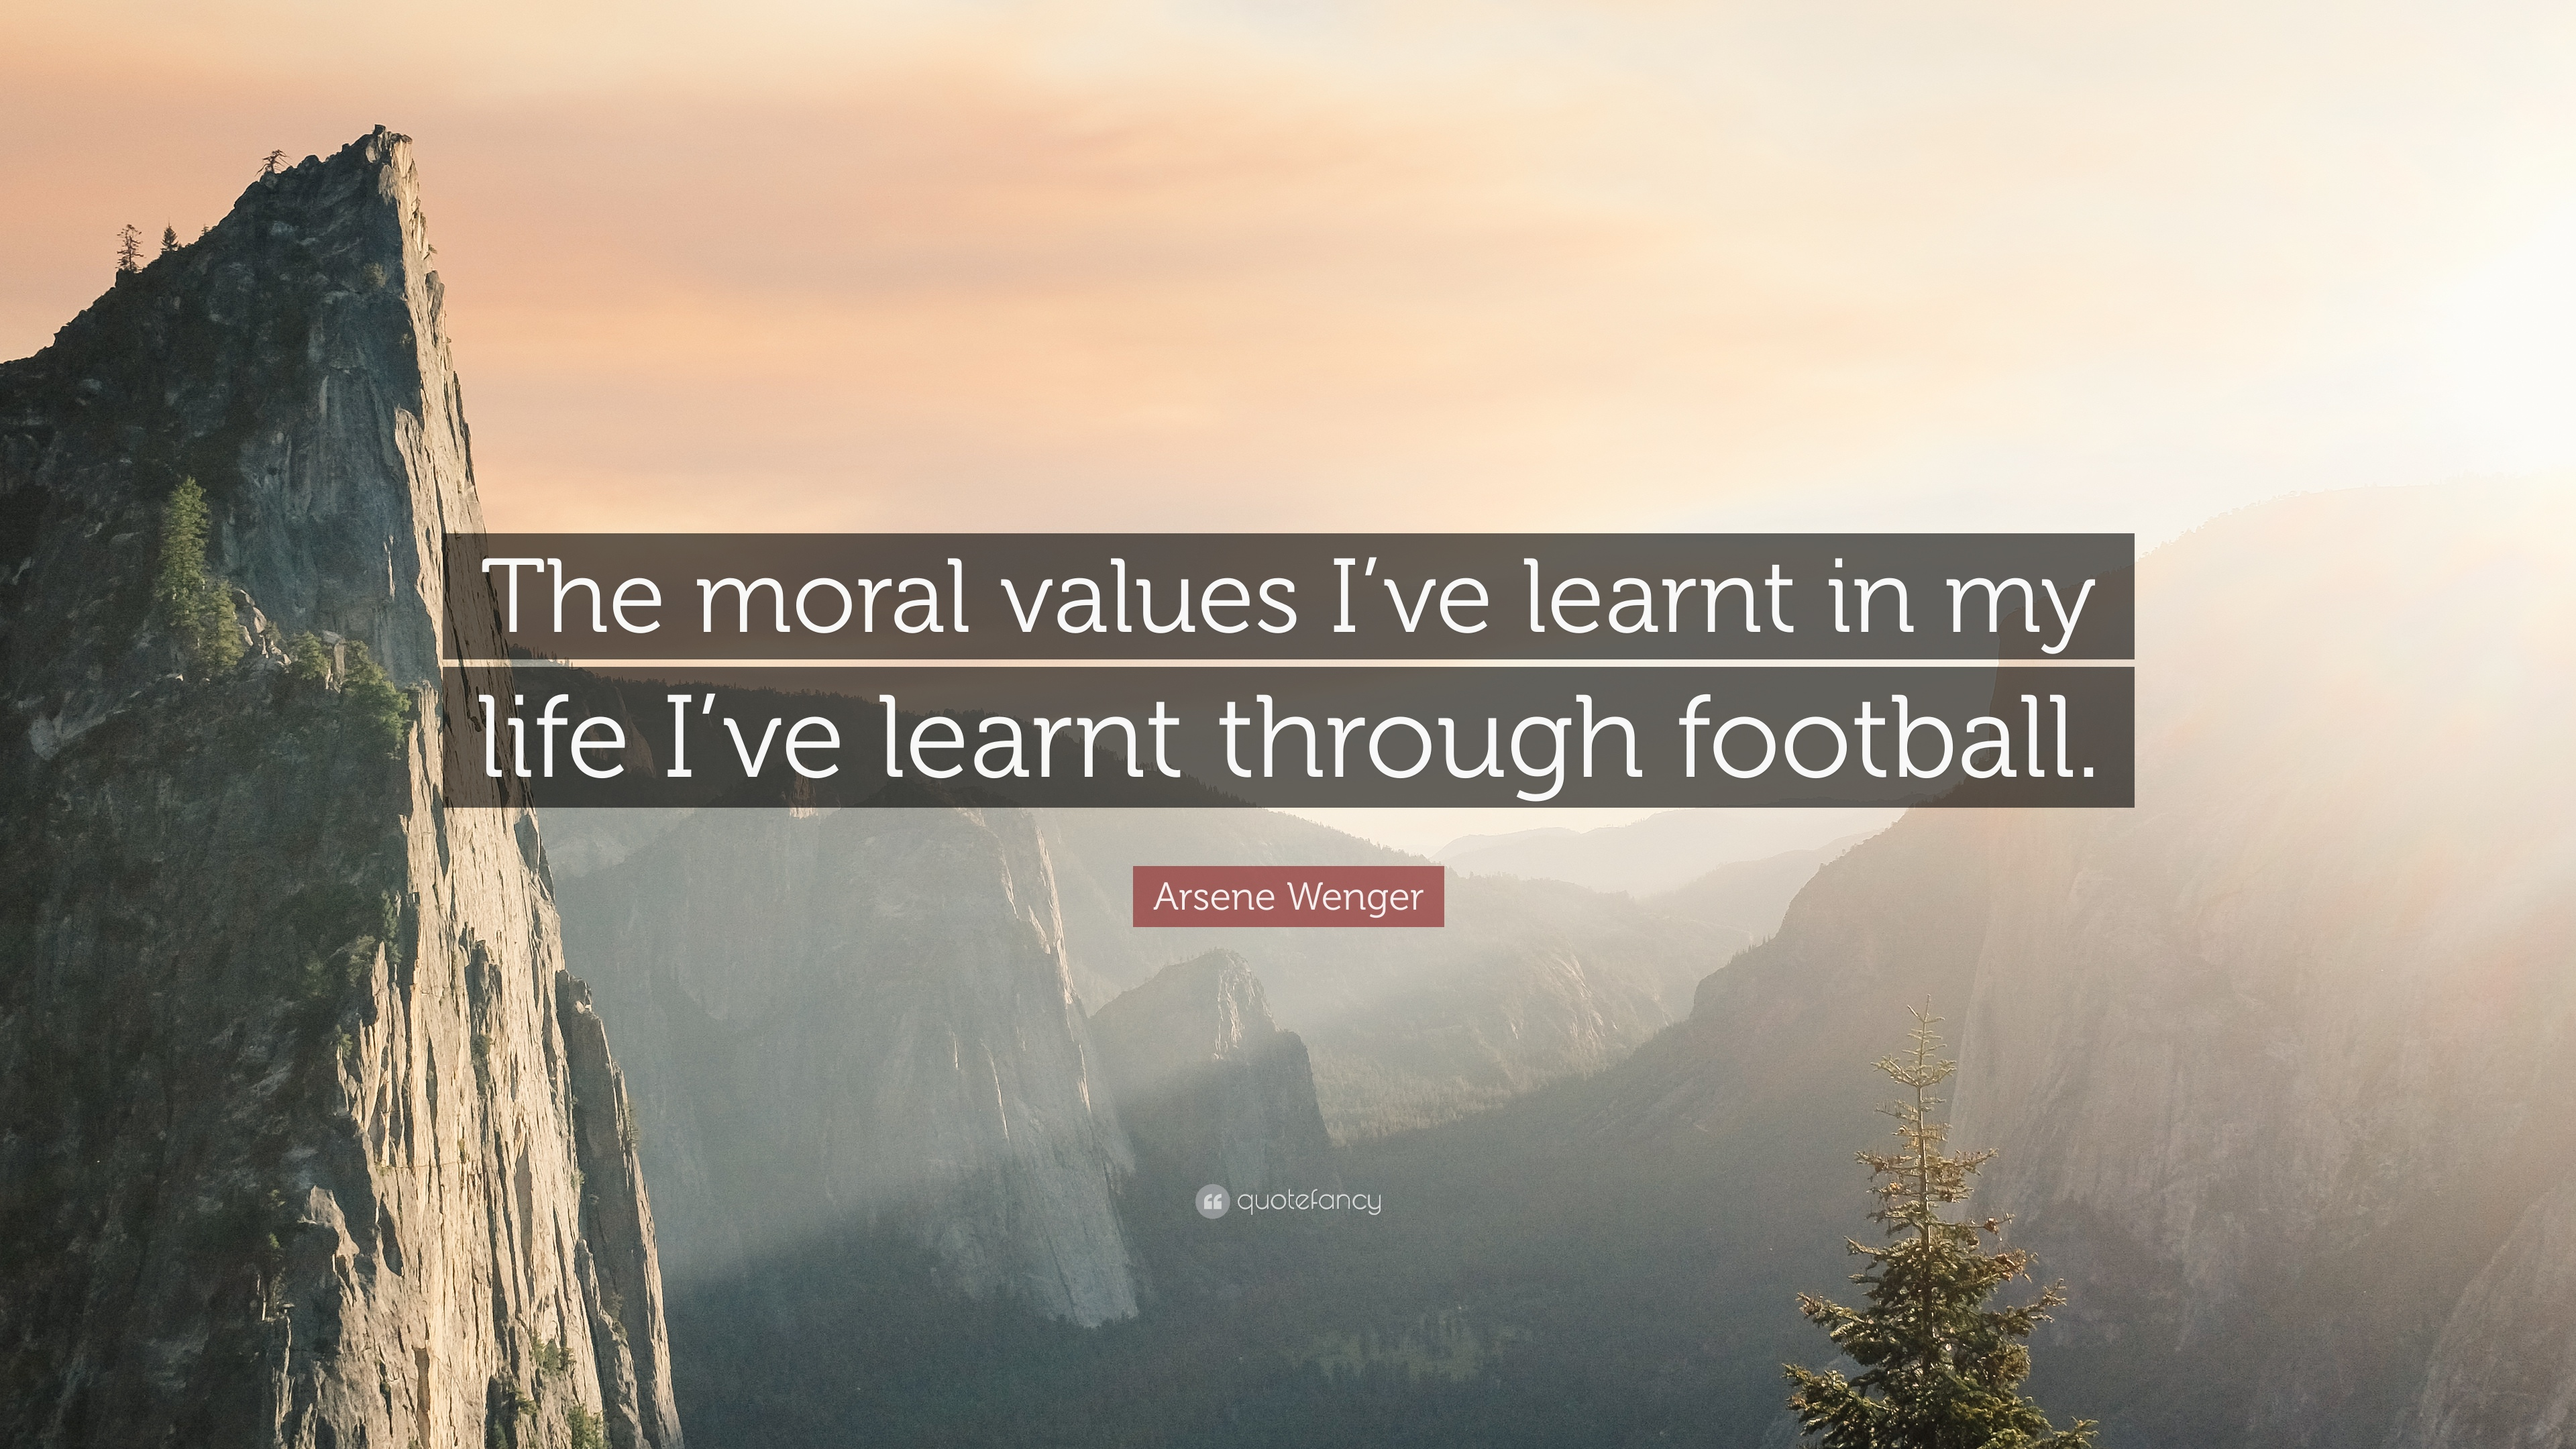 arsene wenger quote the moral values i ve learnt in my life i ve arsene wenger quote the moral values i ve learnt in my life i